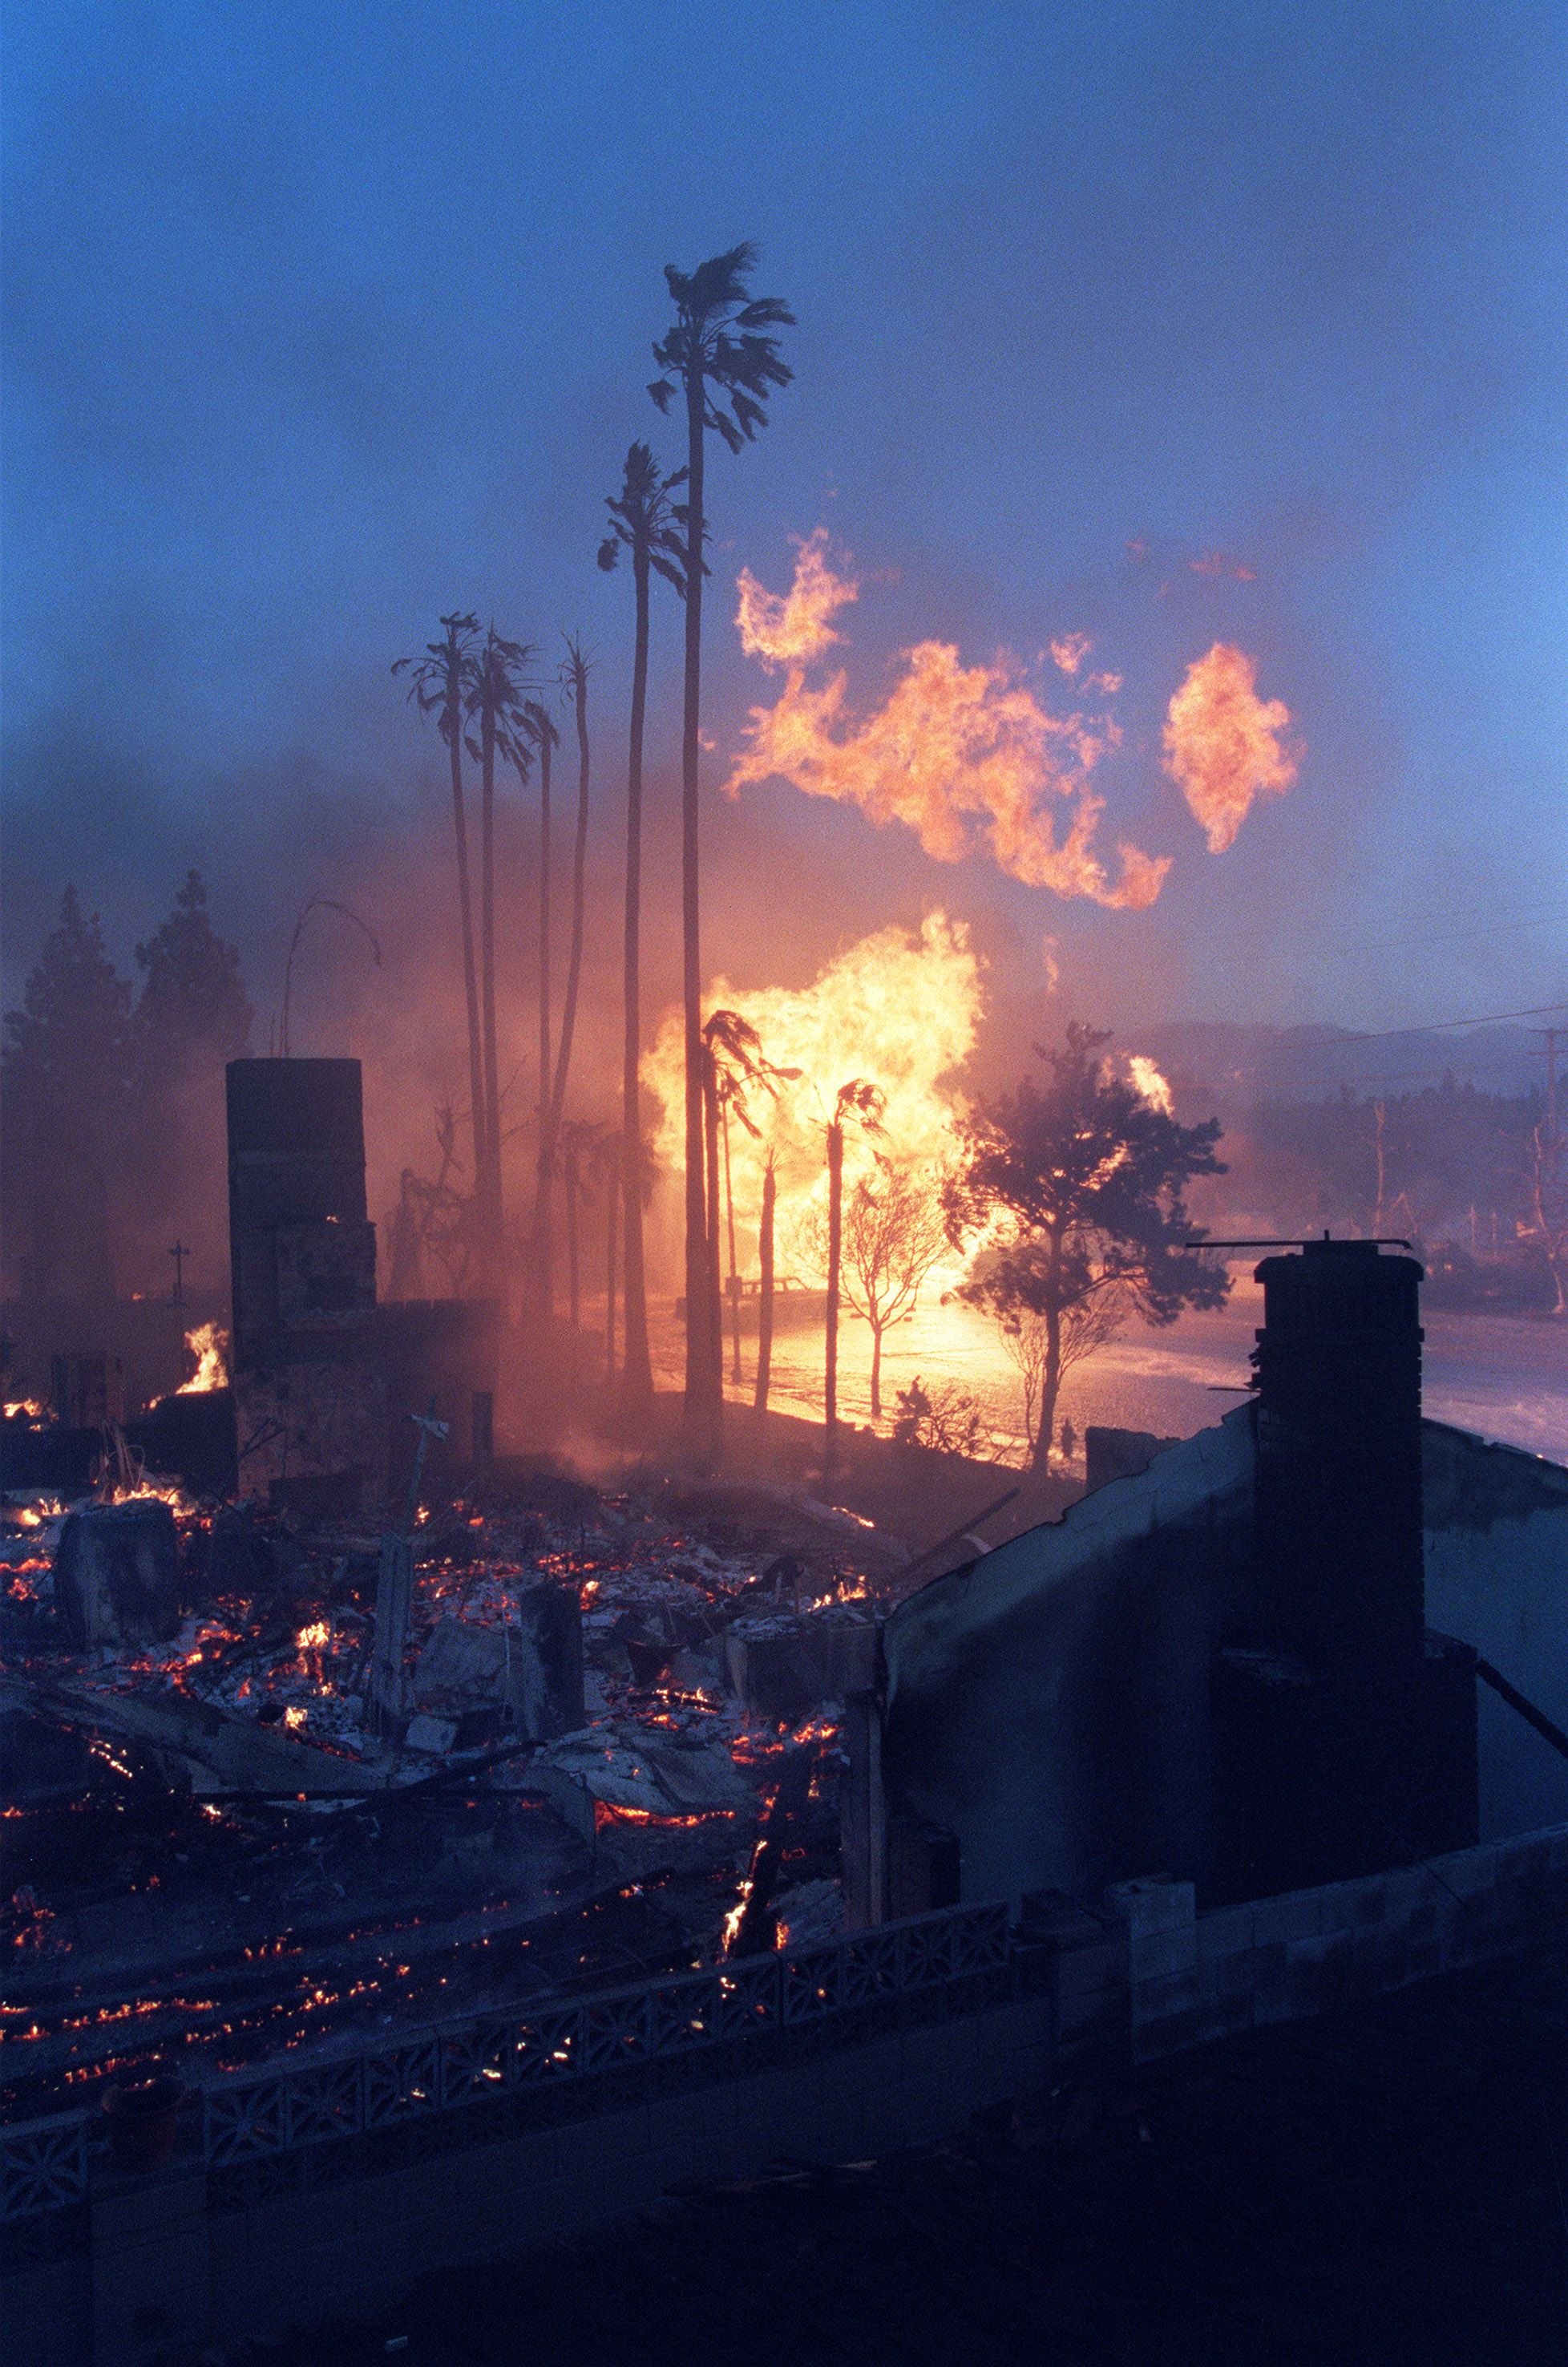 A Gas Main On Fire Throws Flames Into The Air After It Broke And Exploded Destroying Nearby Homes Following The No Northridge Earthquake Northridge Earthquake